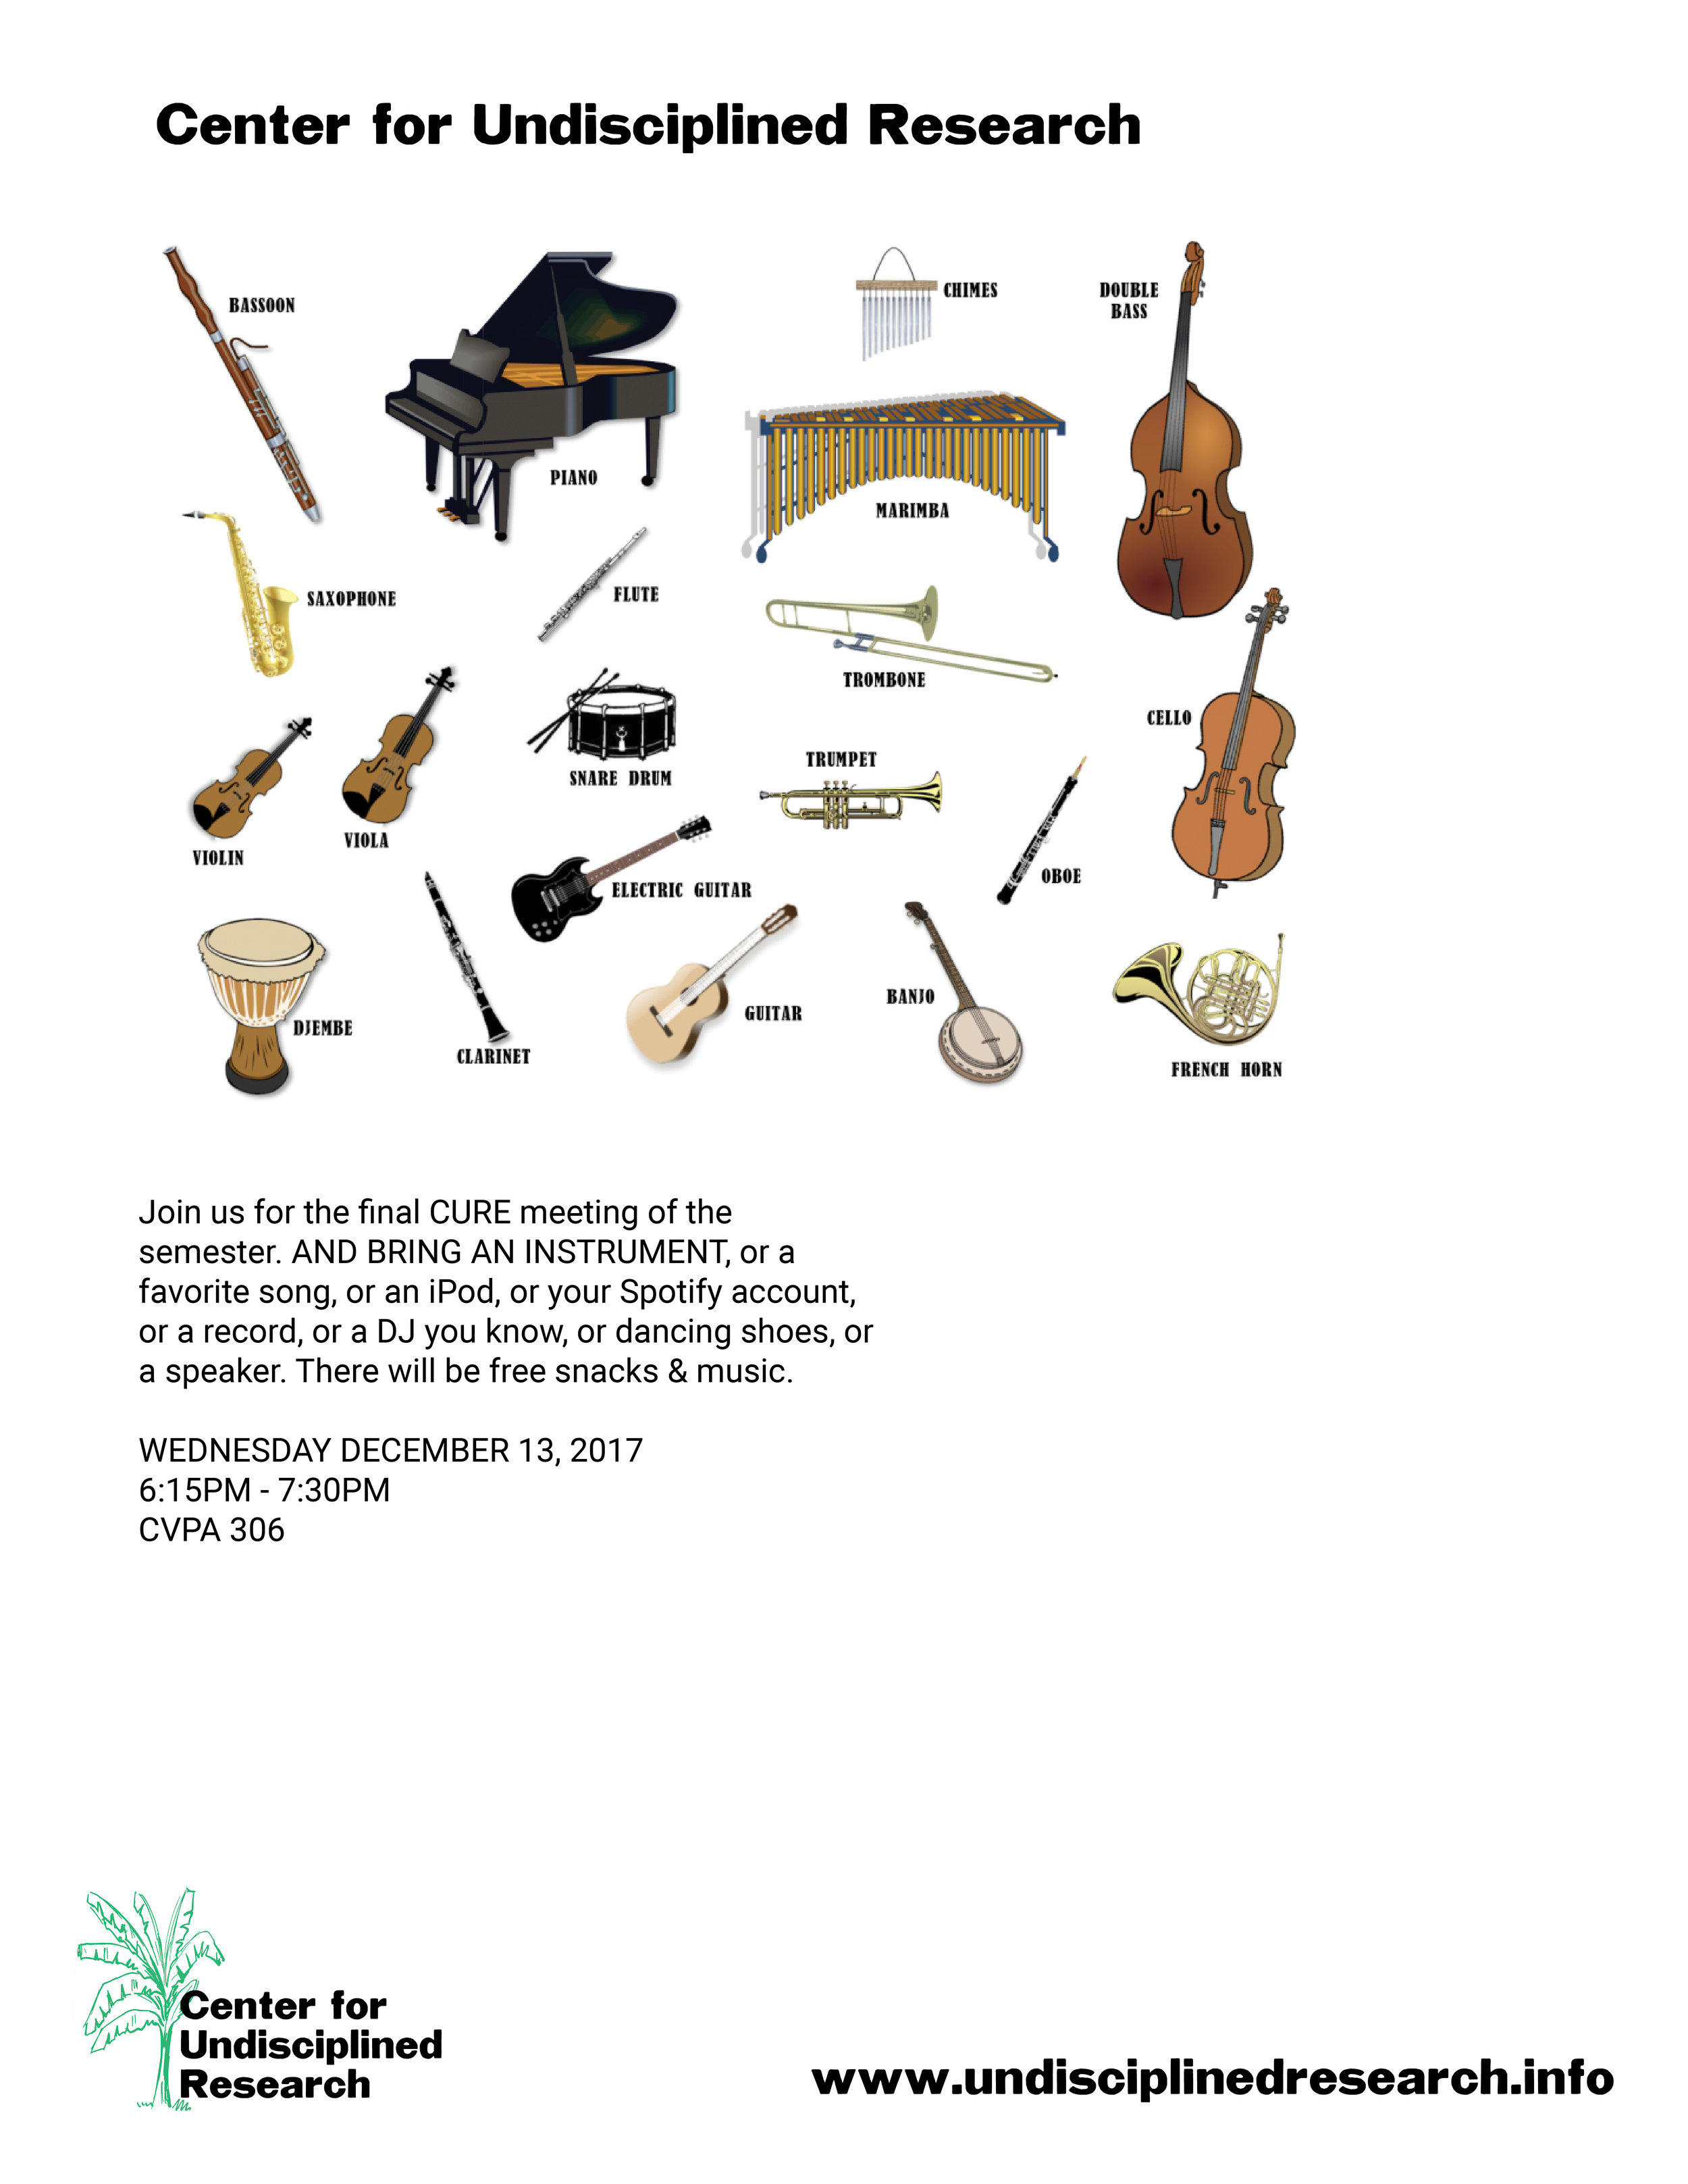 For our final event of the semester, we're hosting a music celebration on Wednesday December 13th, 6:15-7:30PM in CVPA 306! Fingers crossed someone brings an instrument!